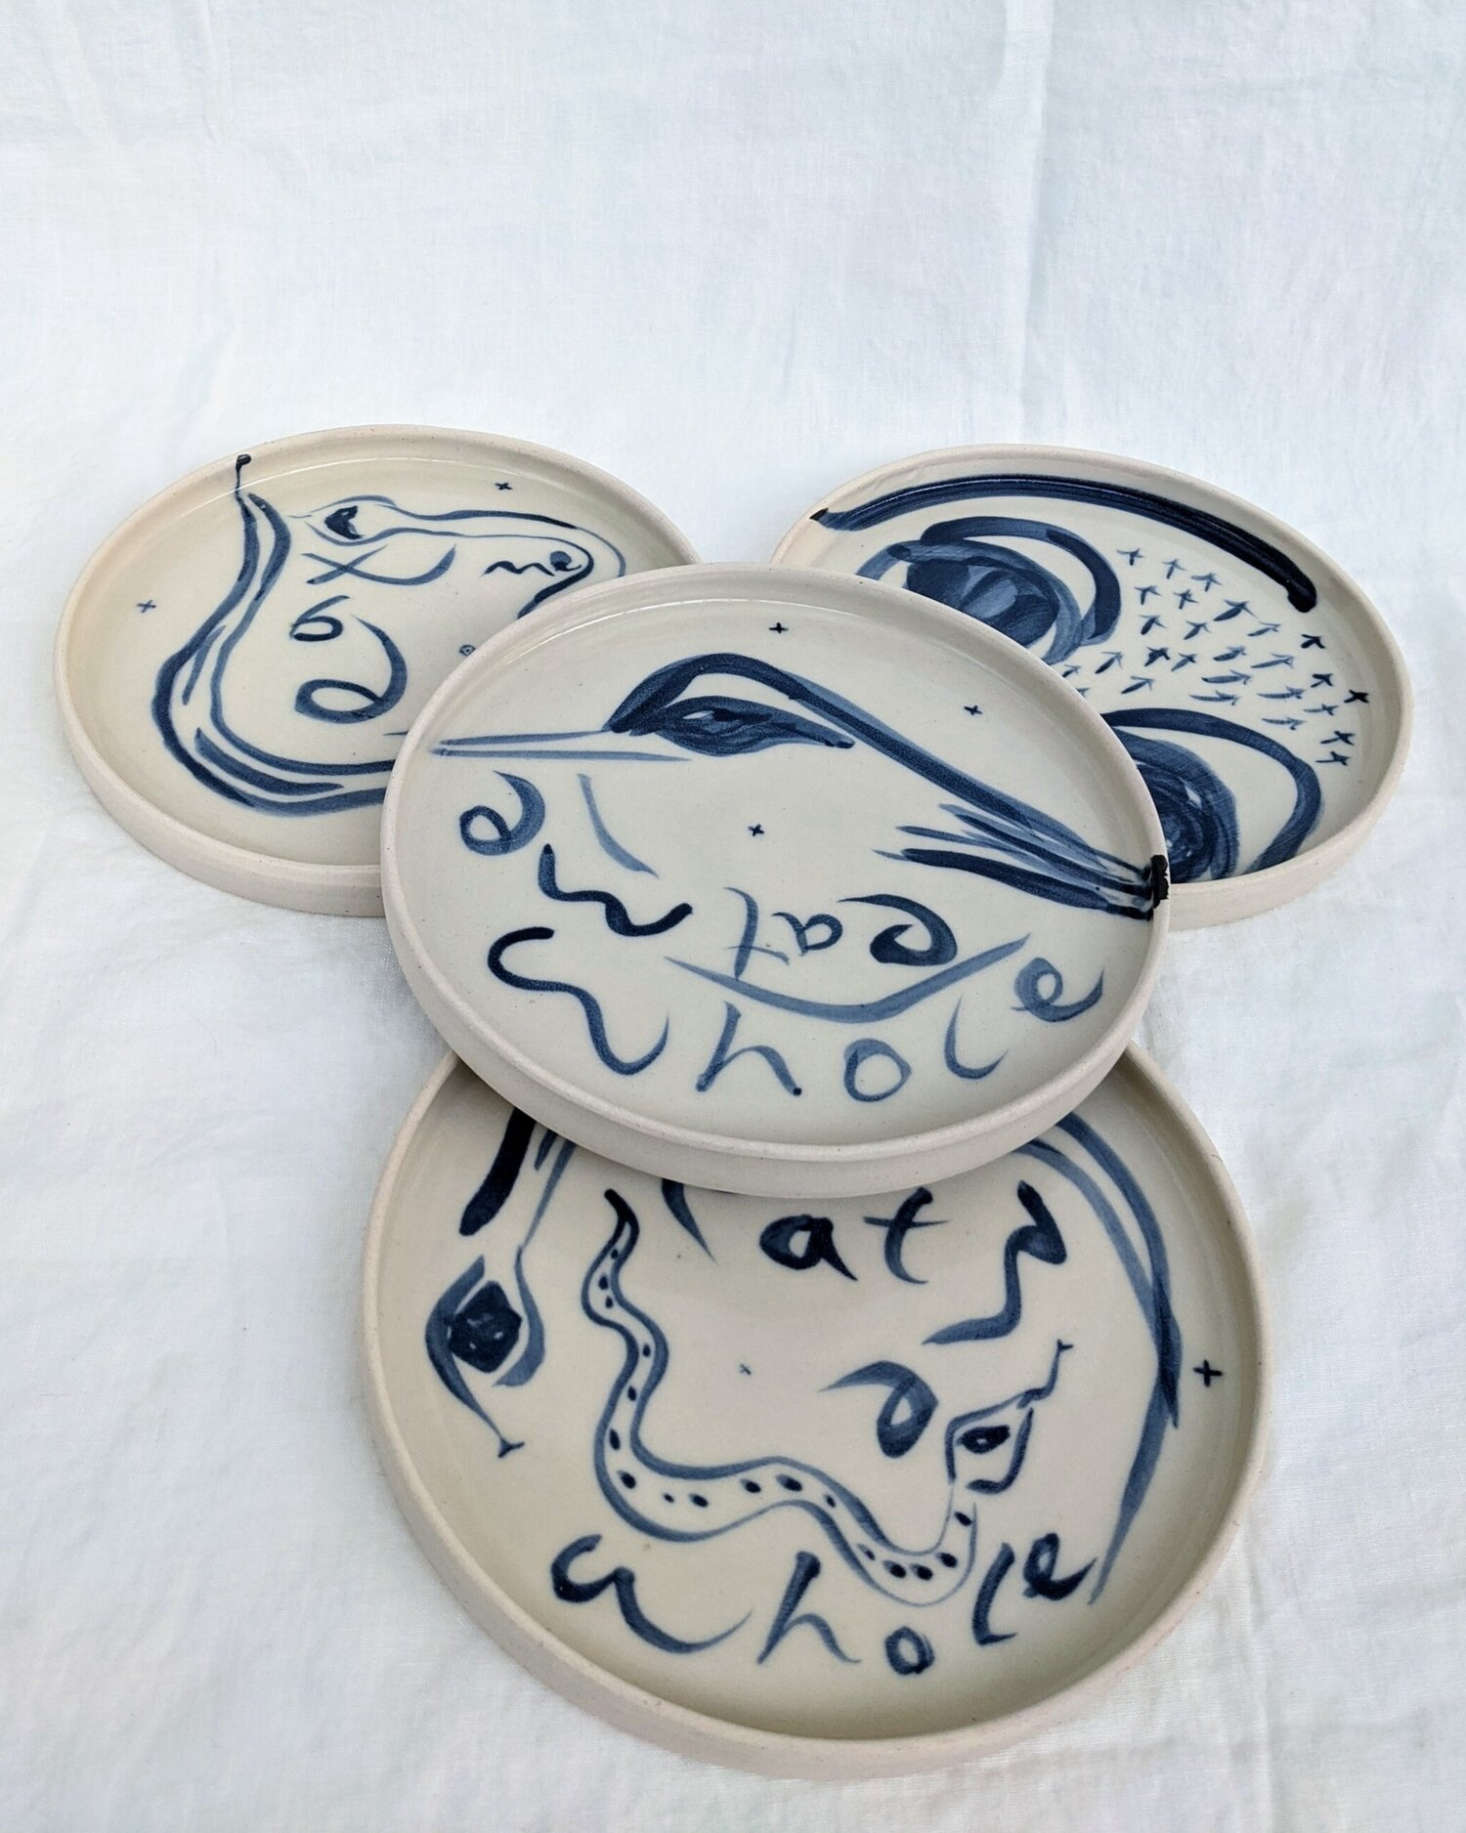 Collings-James released new work this month, but much of it has been sold already, including this set of four Eat Me Whole Plates for £300.